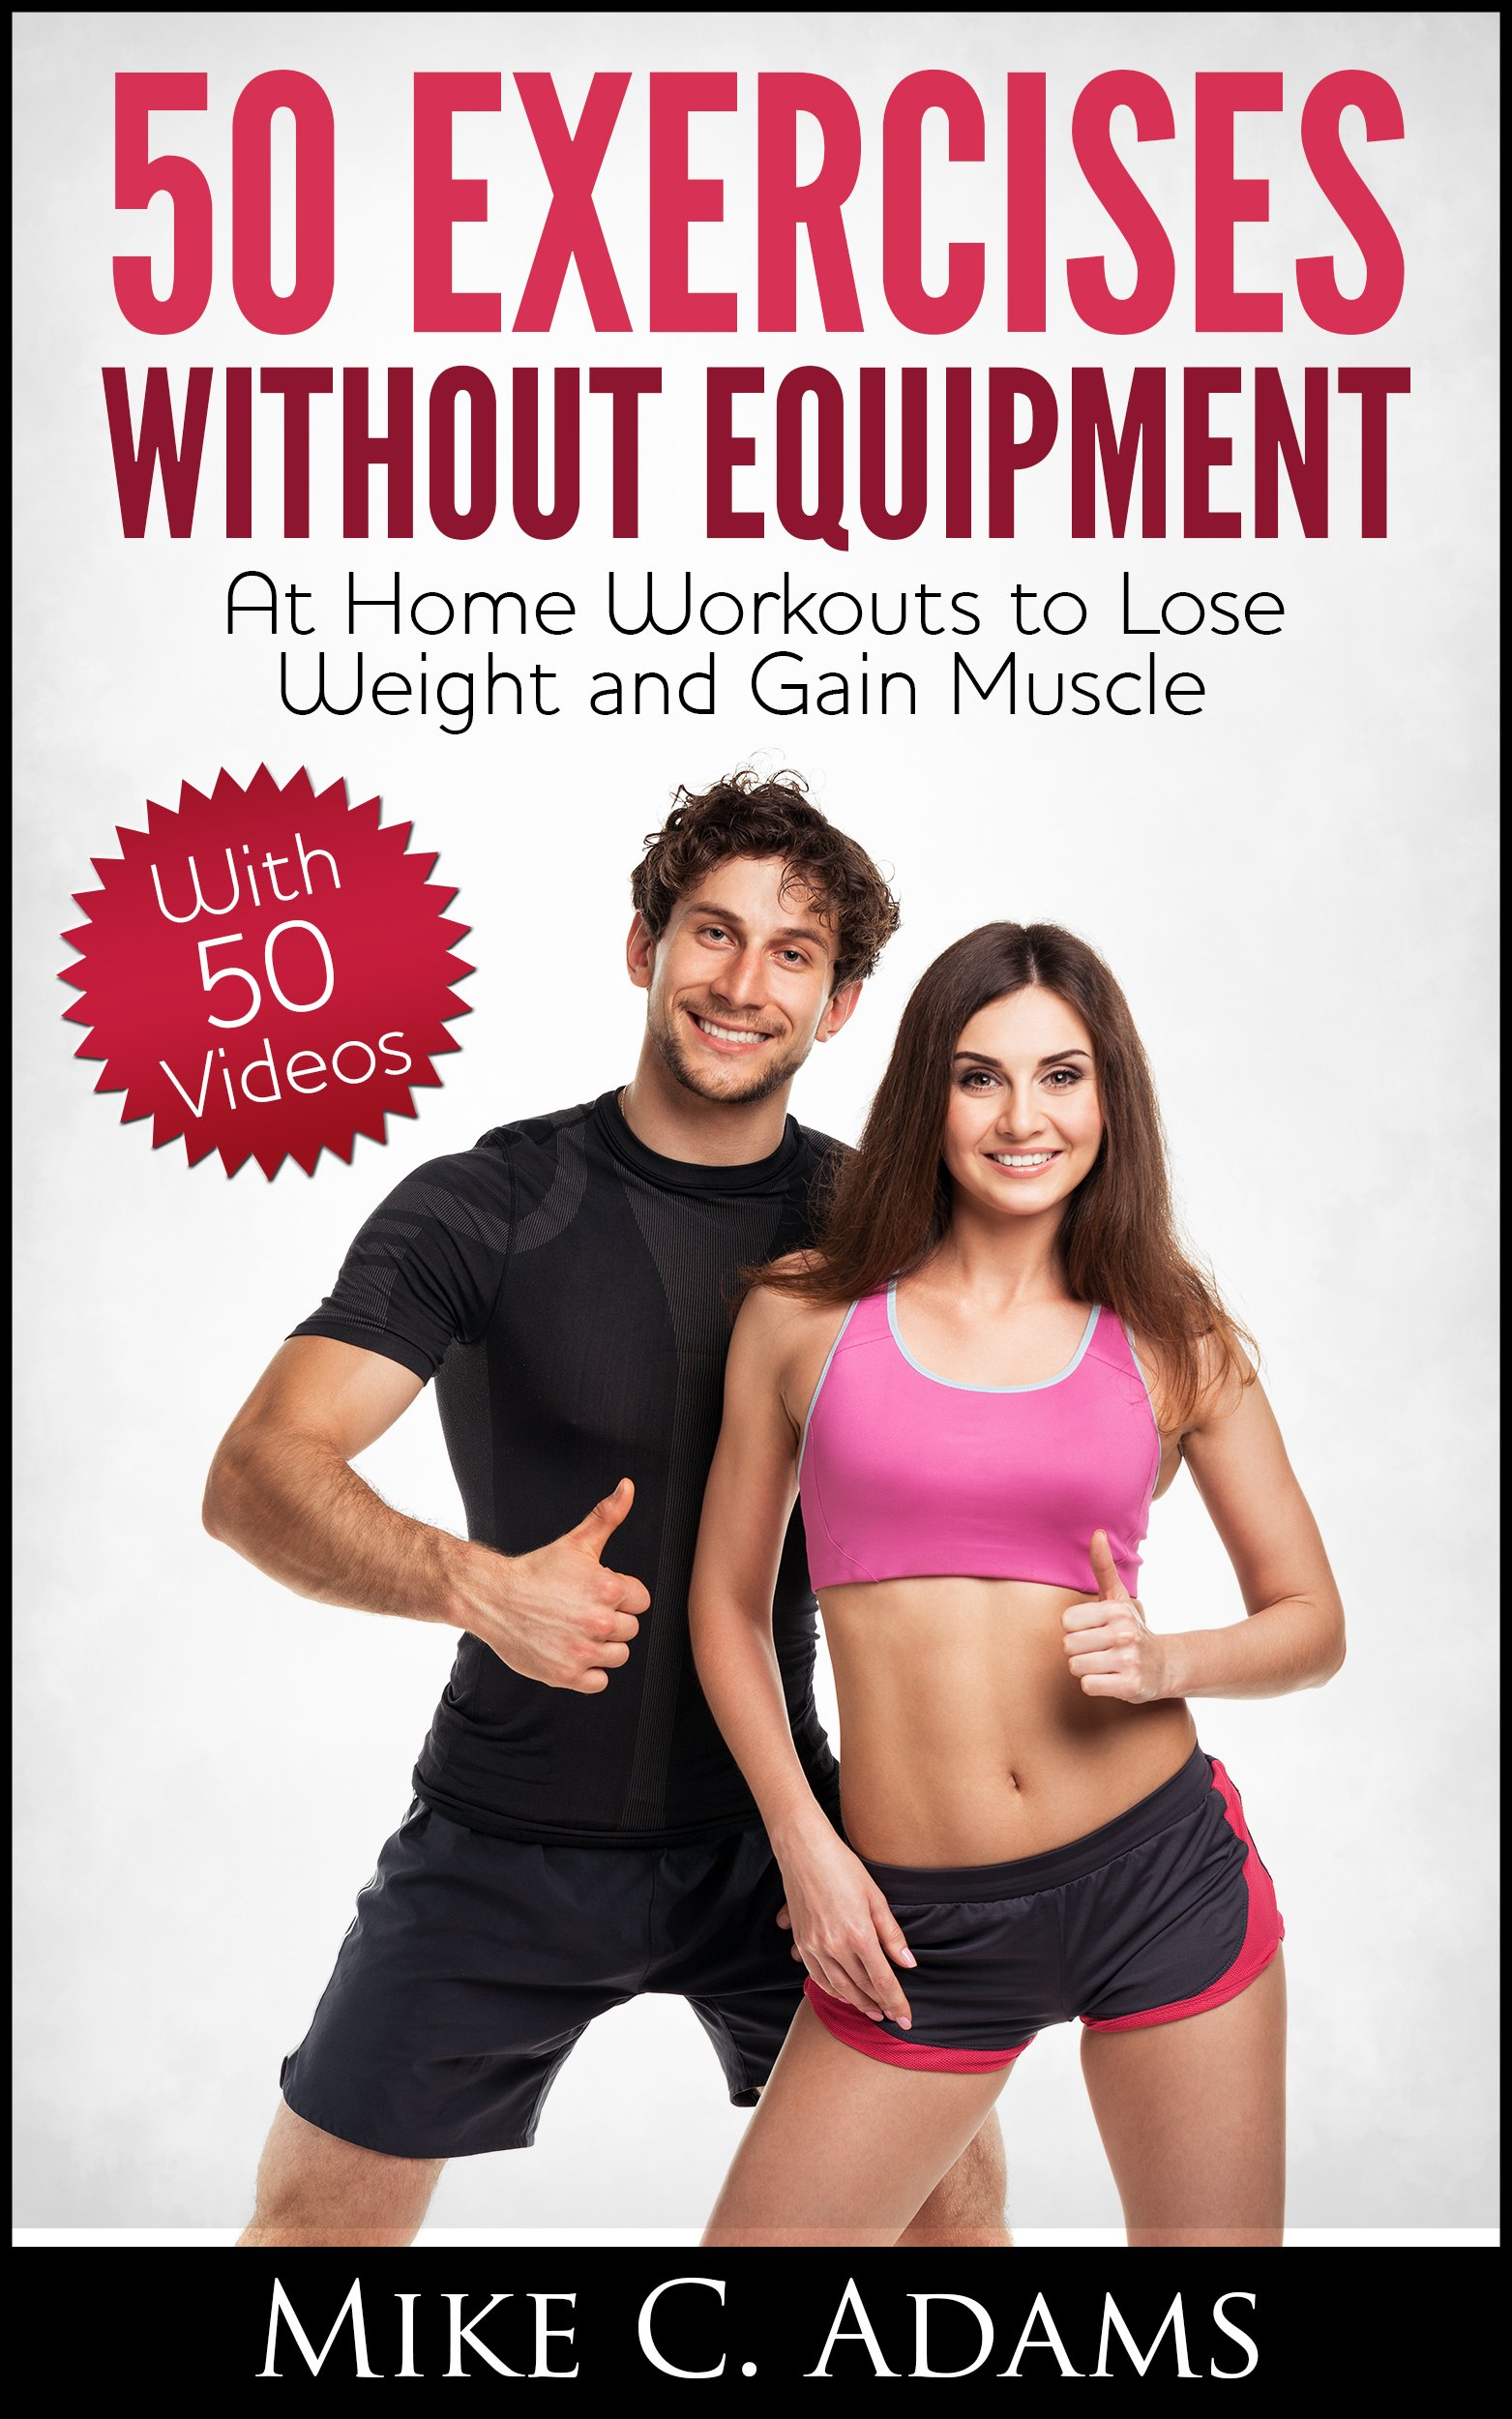 workouts at home to lose weight photo - 1